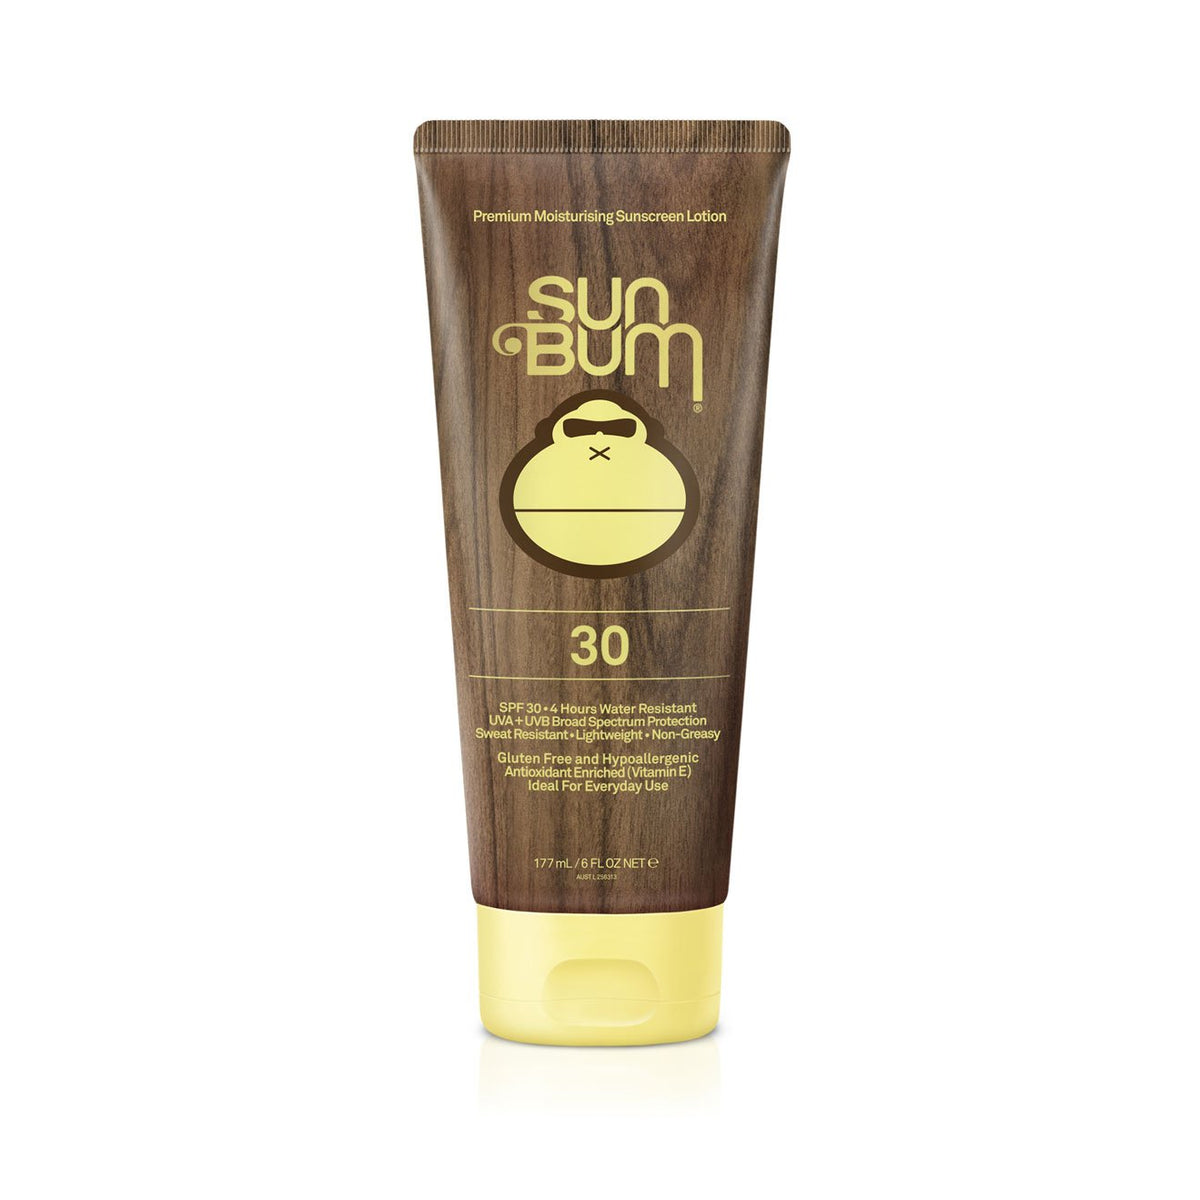 Sun Bum SPF 30 Lotion 177ml